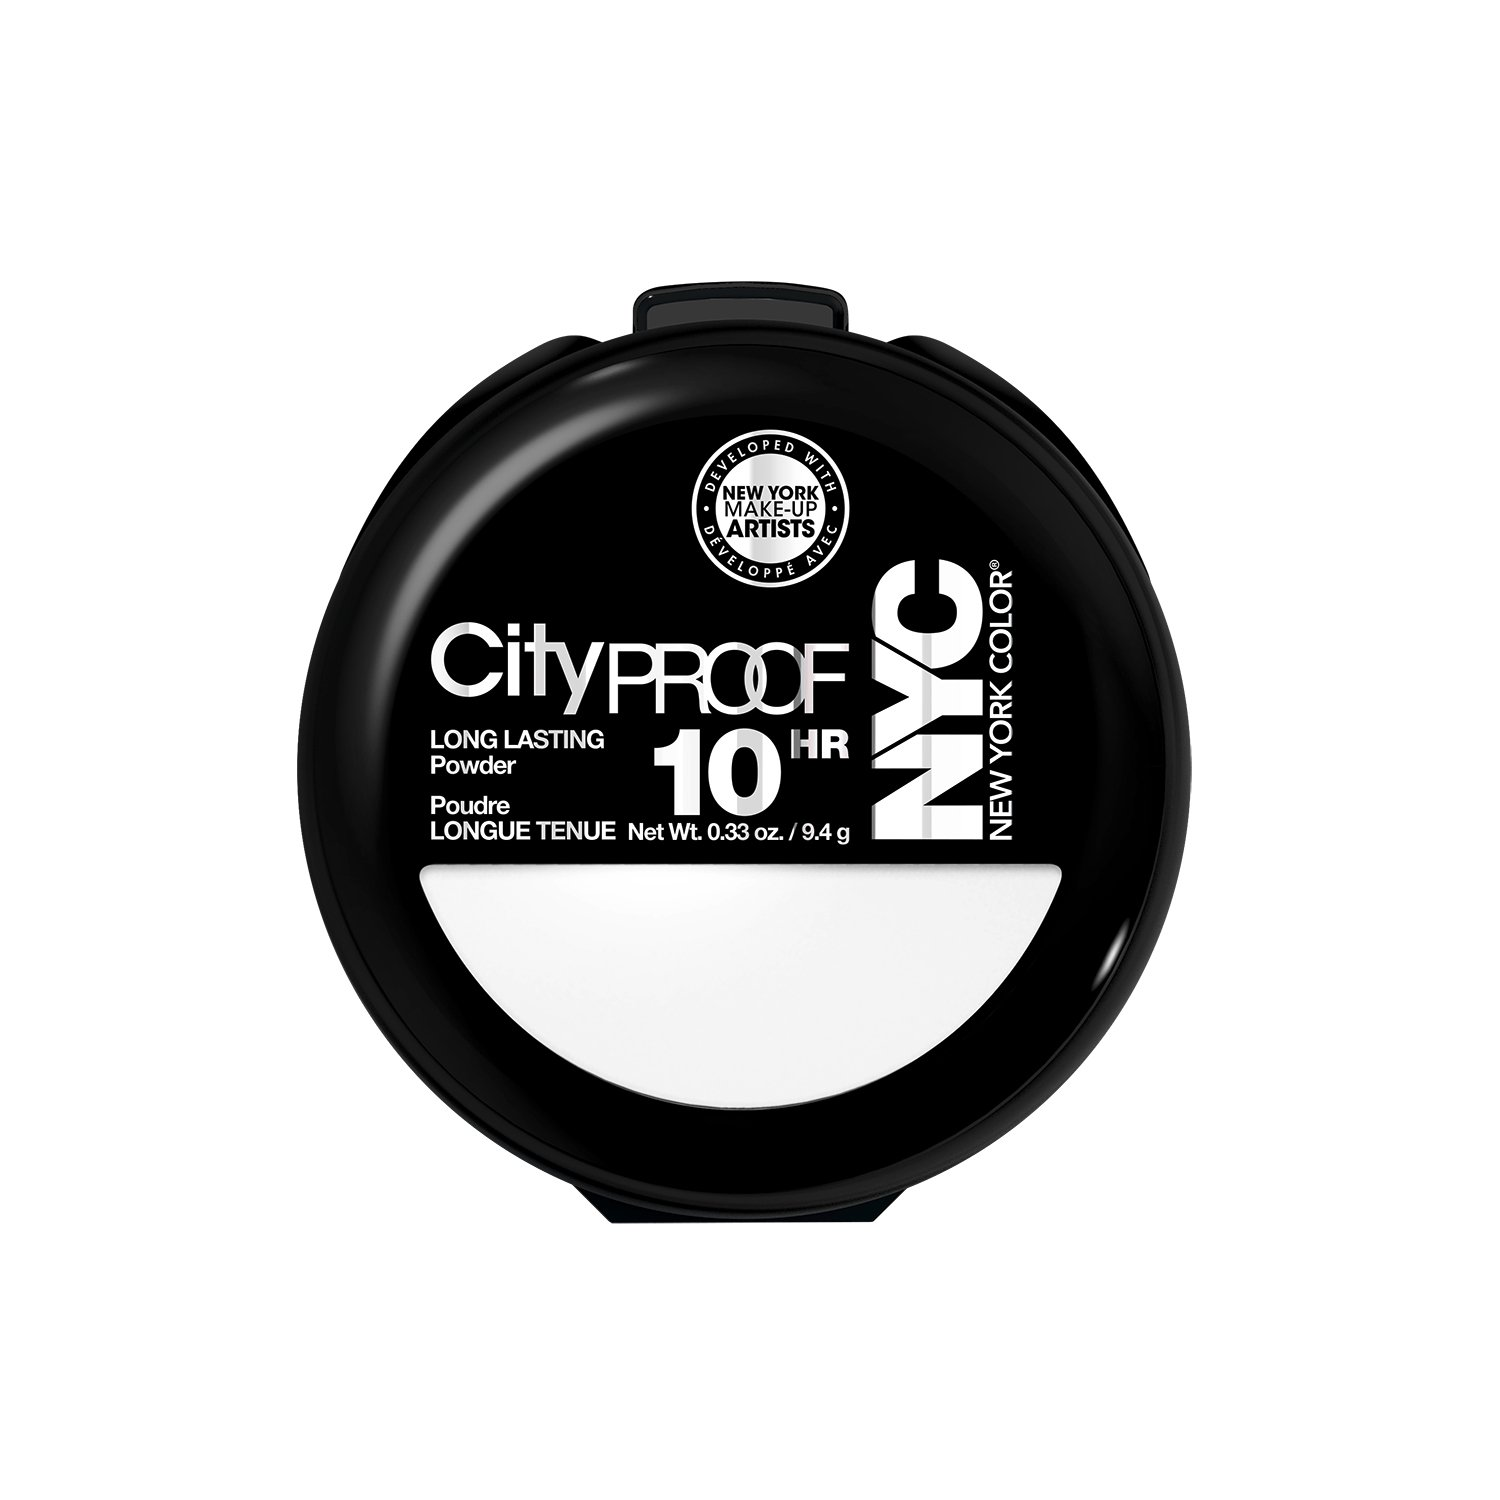 N.Y.C. New York Color Smooth Skin Pressed Face Powder, Translucent, 0.33 Ounce Coty 27333241701